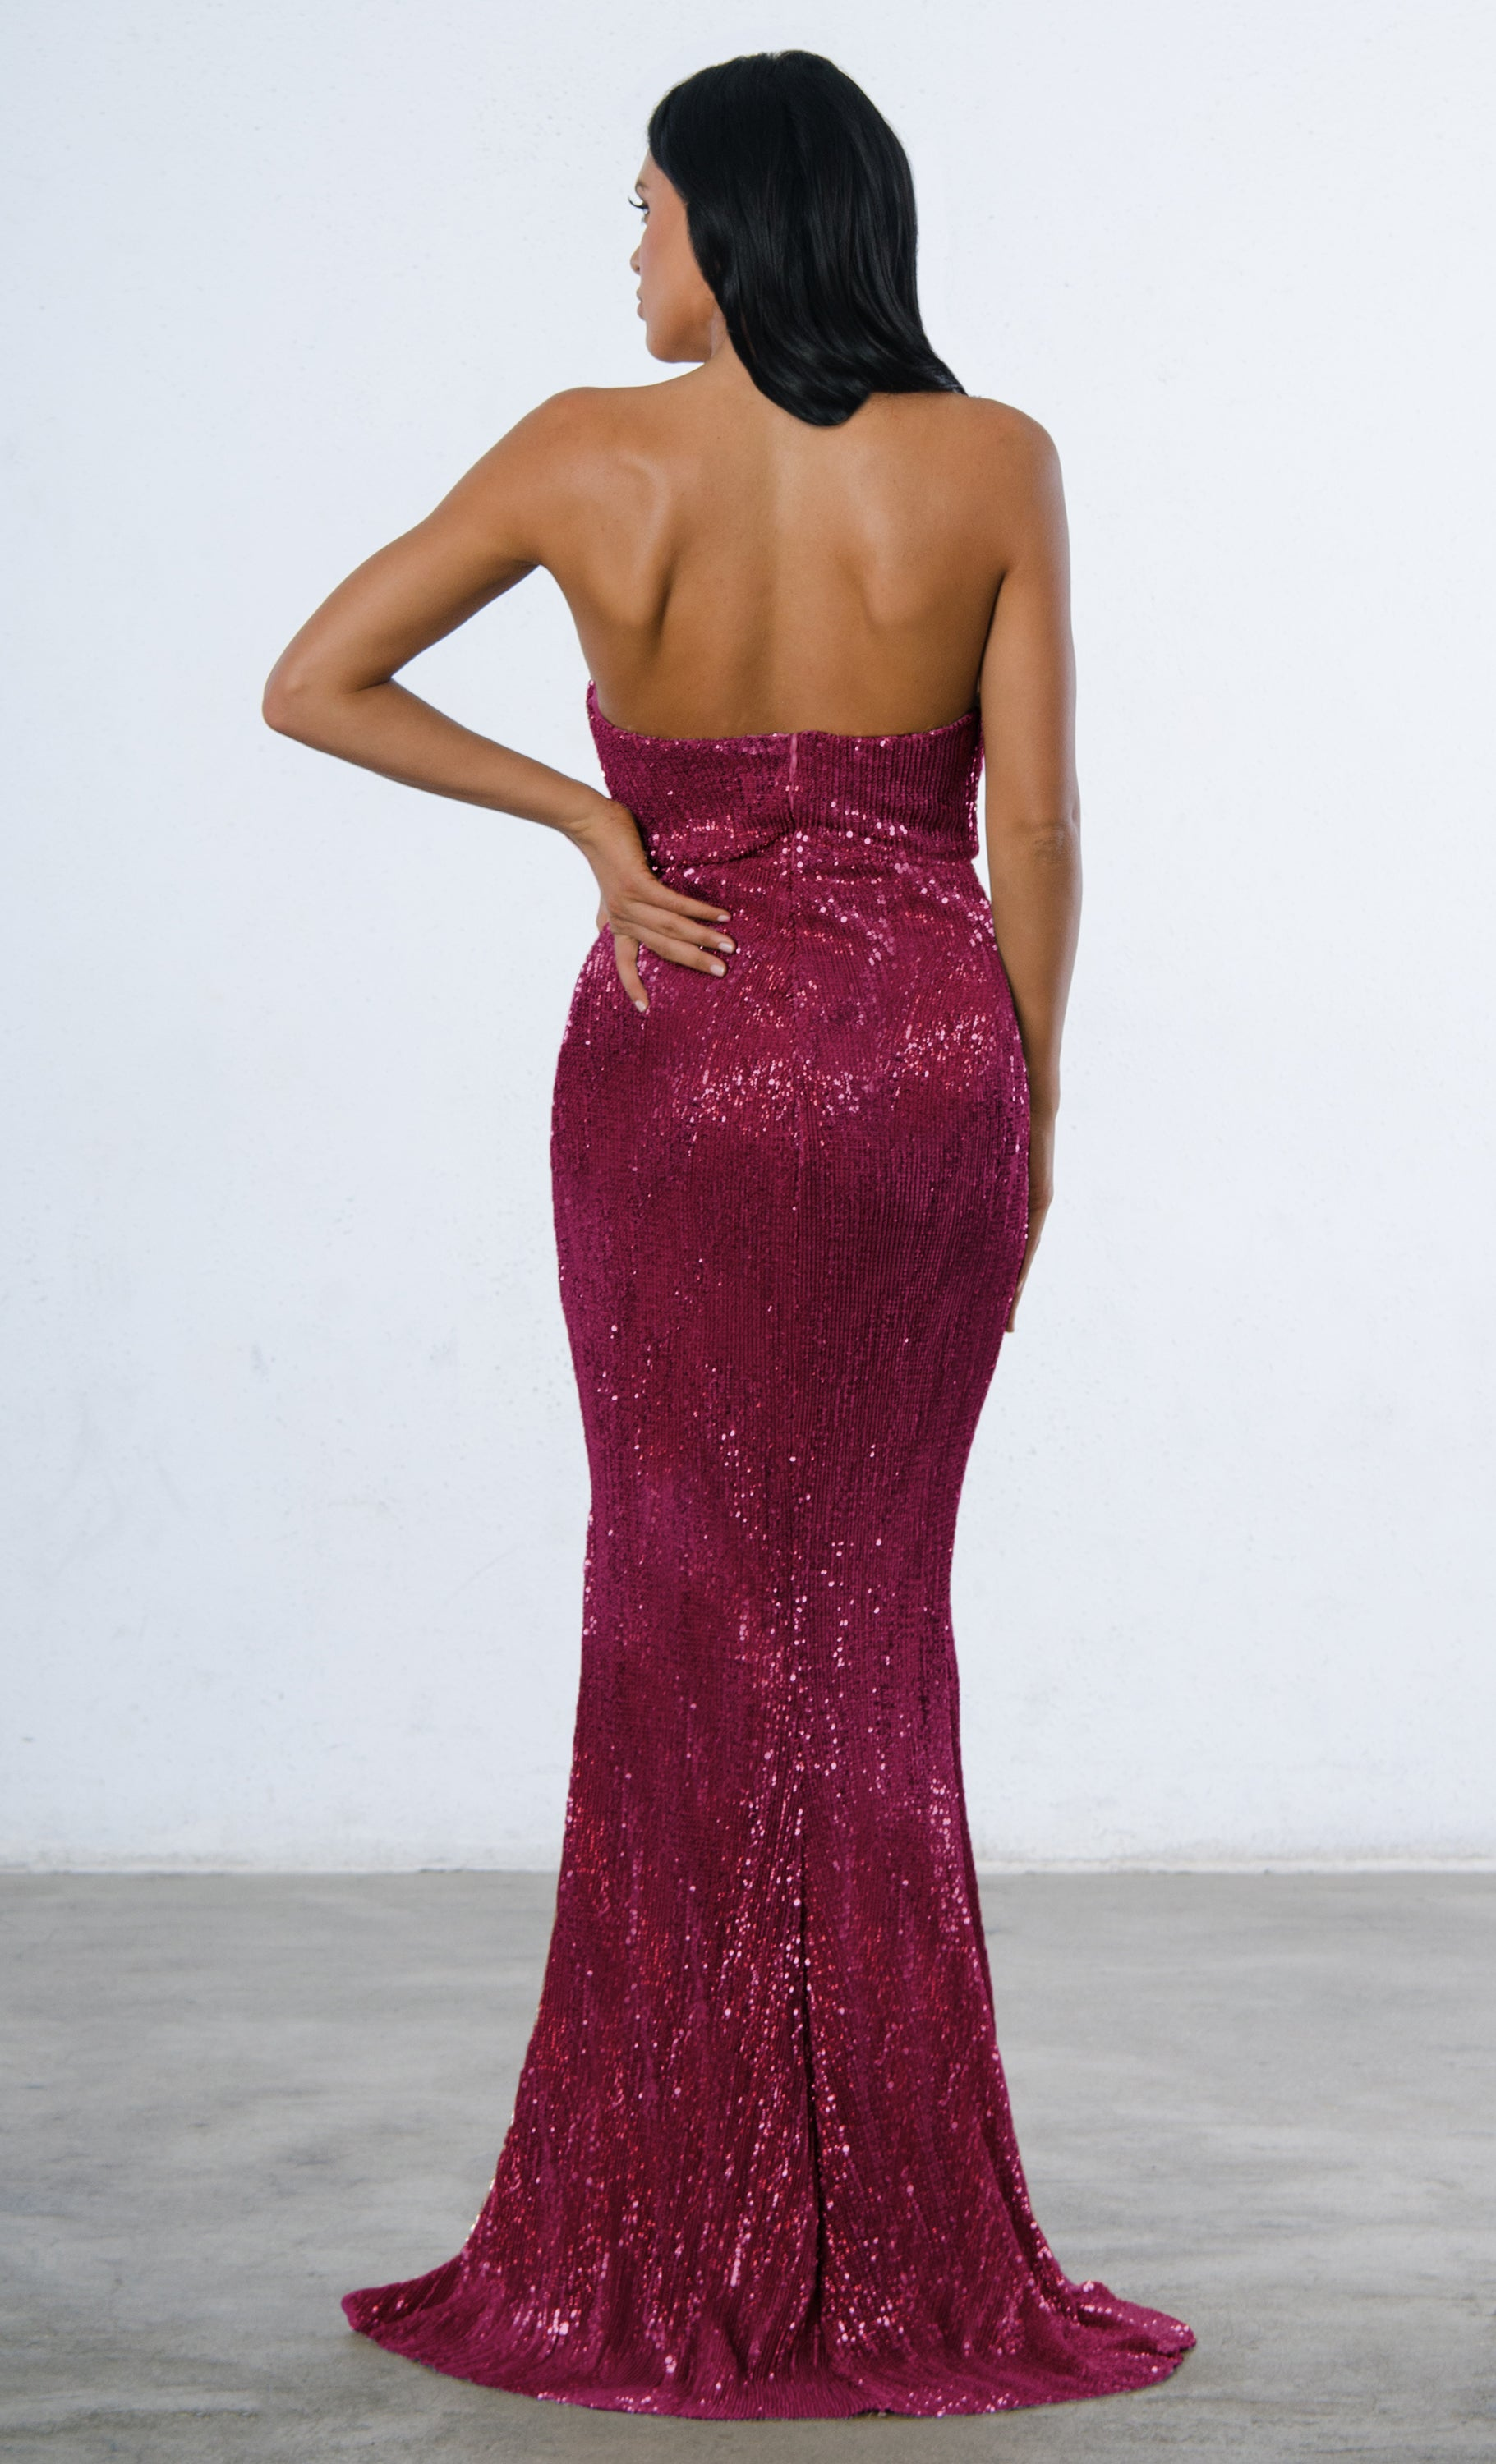 f6372a807b Indie XO Show Me Some Love Burgundy Wine Red Sequin Strapless Sweetheart  Neck High Slit Fishtail